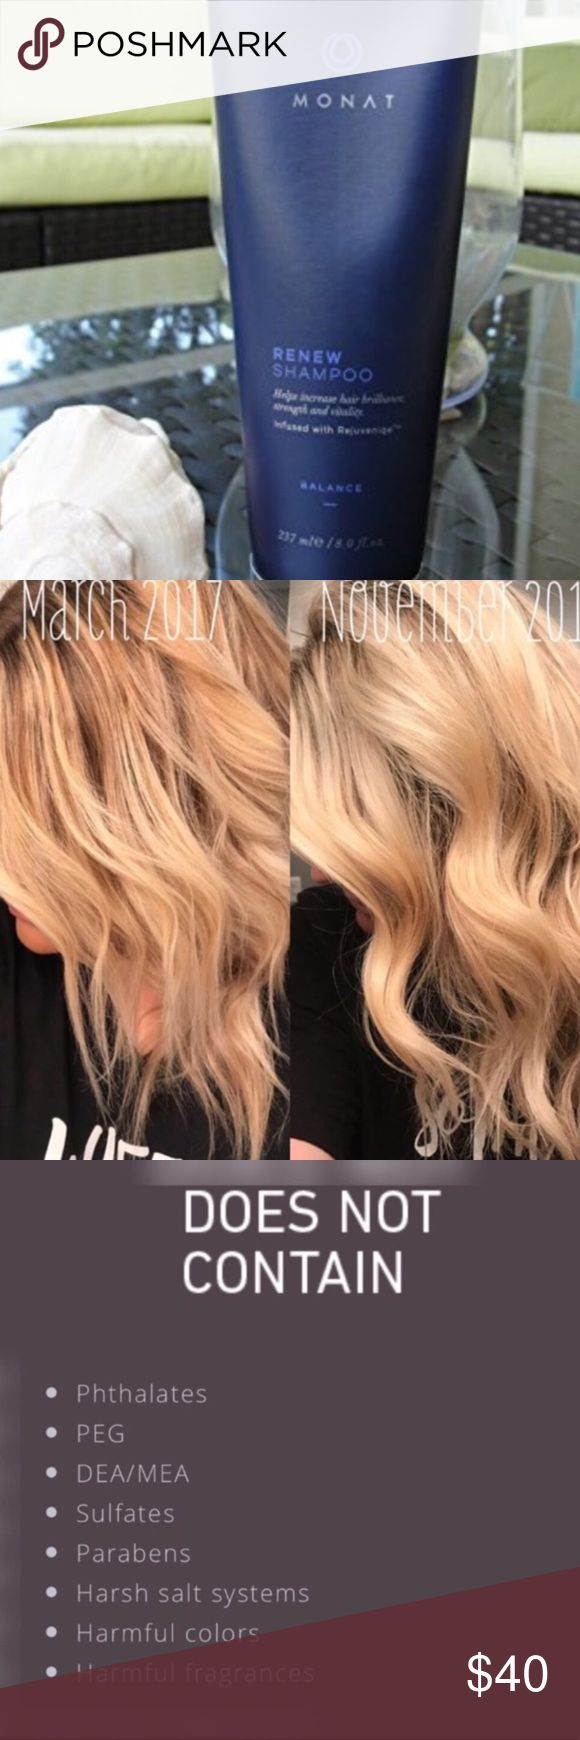 MONAT Renew Hydrating Shampoo + FREE Samples New full size. Comes with 2 free samples of product while supplies last! A truly transformative shampoo! Infused with Rejuvenique Oil to breathe life and vitality back to your hair!  Anti-aging and naturally based. Monat Makeup